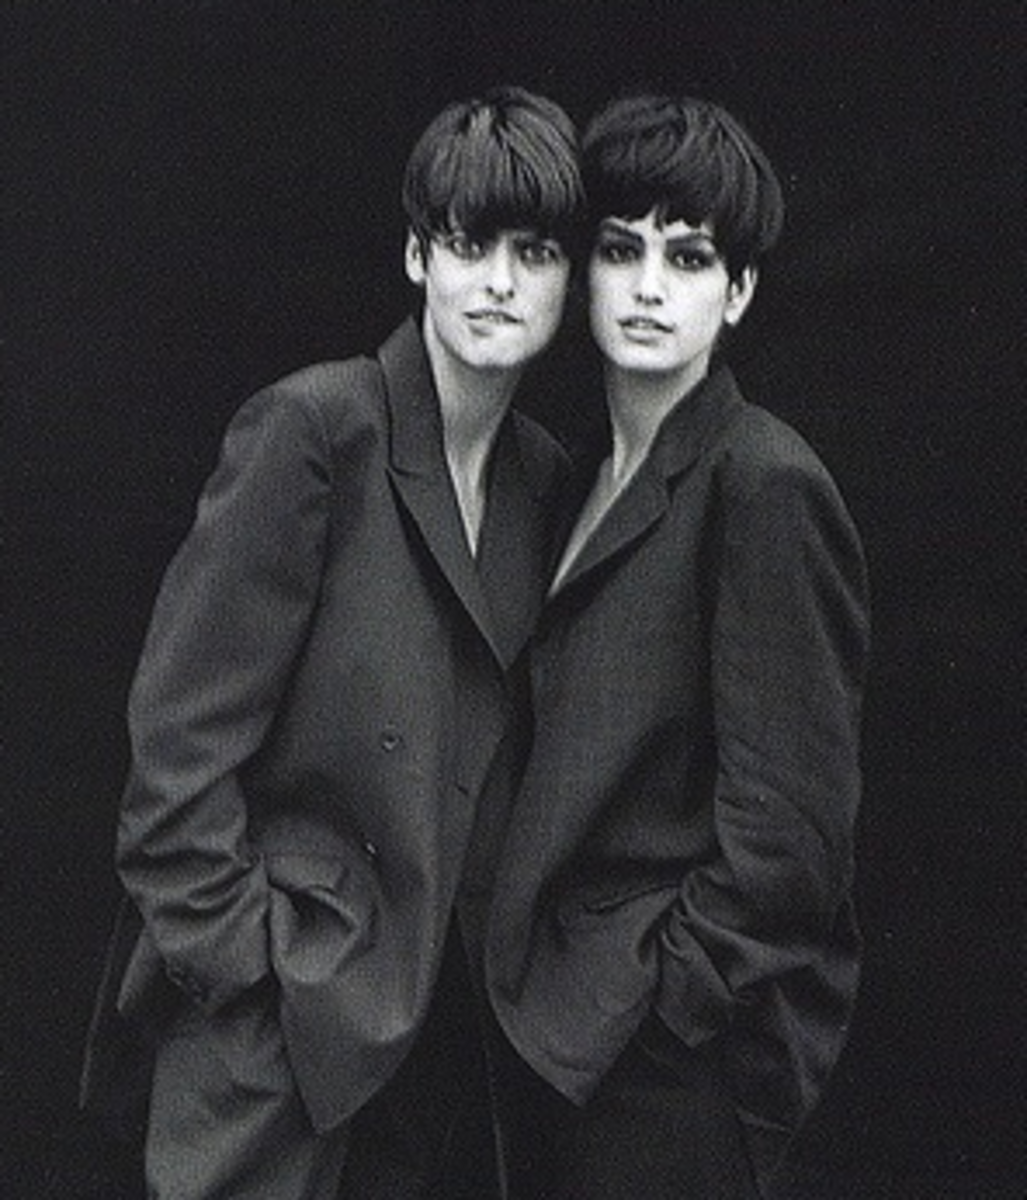 Linda Evangelista and Cindy Crawford with boy-cuts 1989.